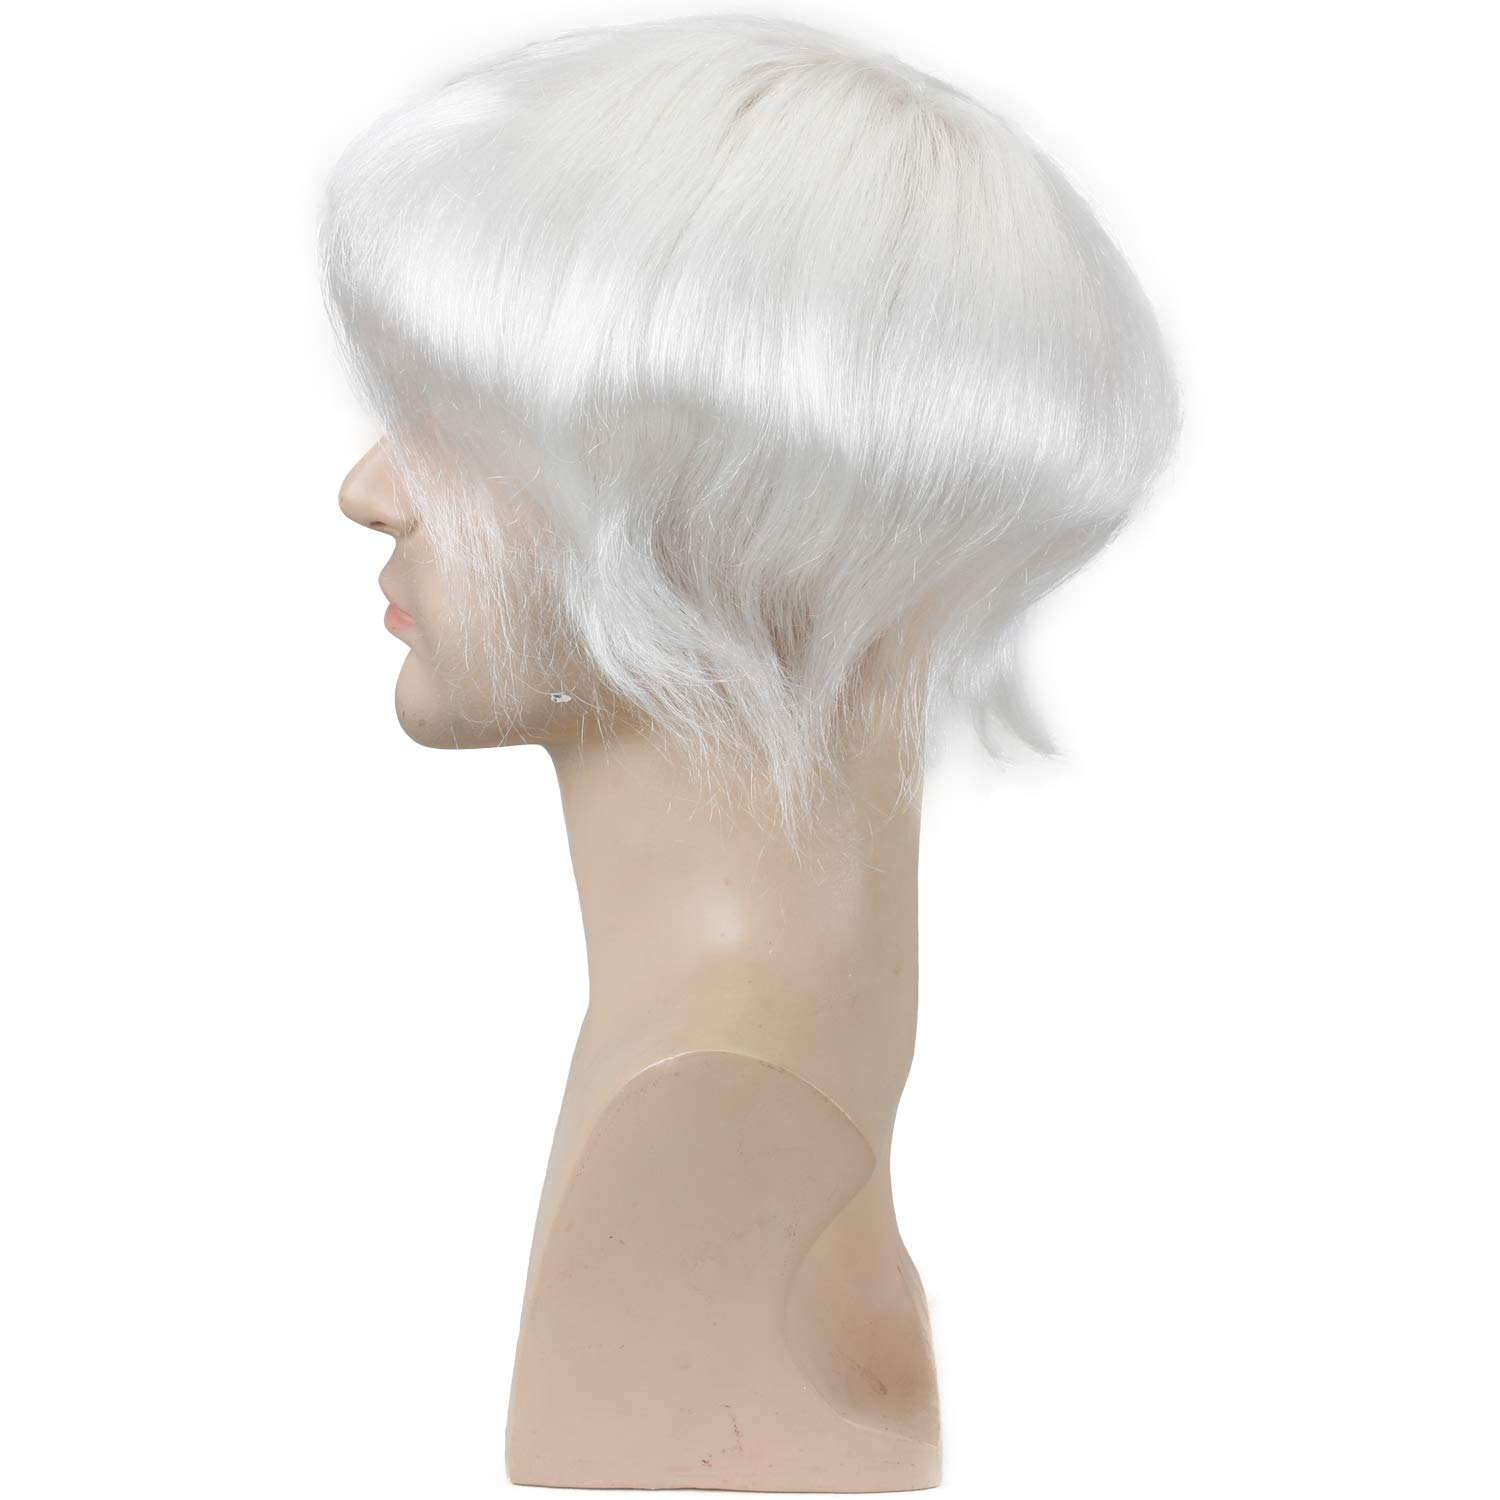 Eseewigs Swiss Full Lace Men's Toupee European Real Human Hair Replacement for Men Hairpiece White Color